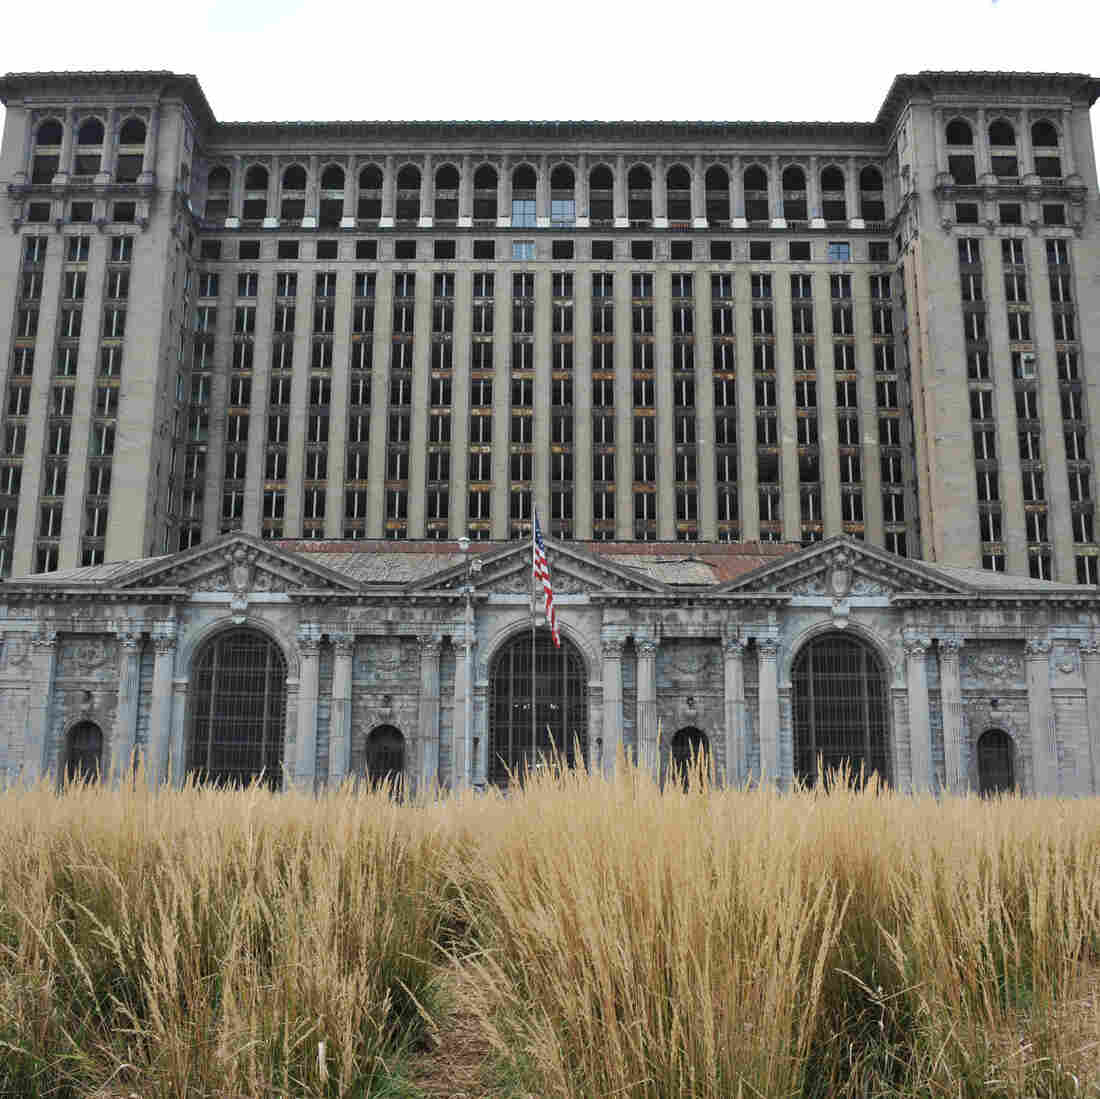 Foreign investors are taking an interest in low real estate prices in Detroit. But these investors aren't buying up land at the rate that some media reports have indicated.